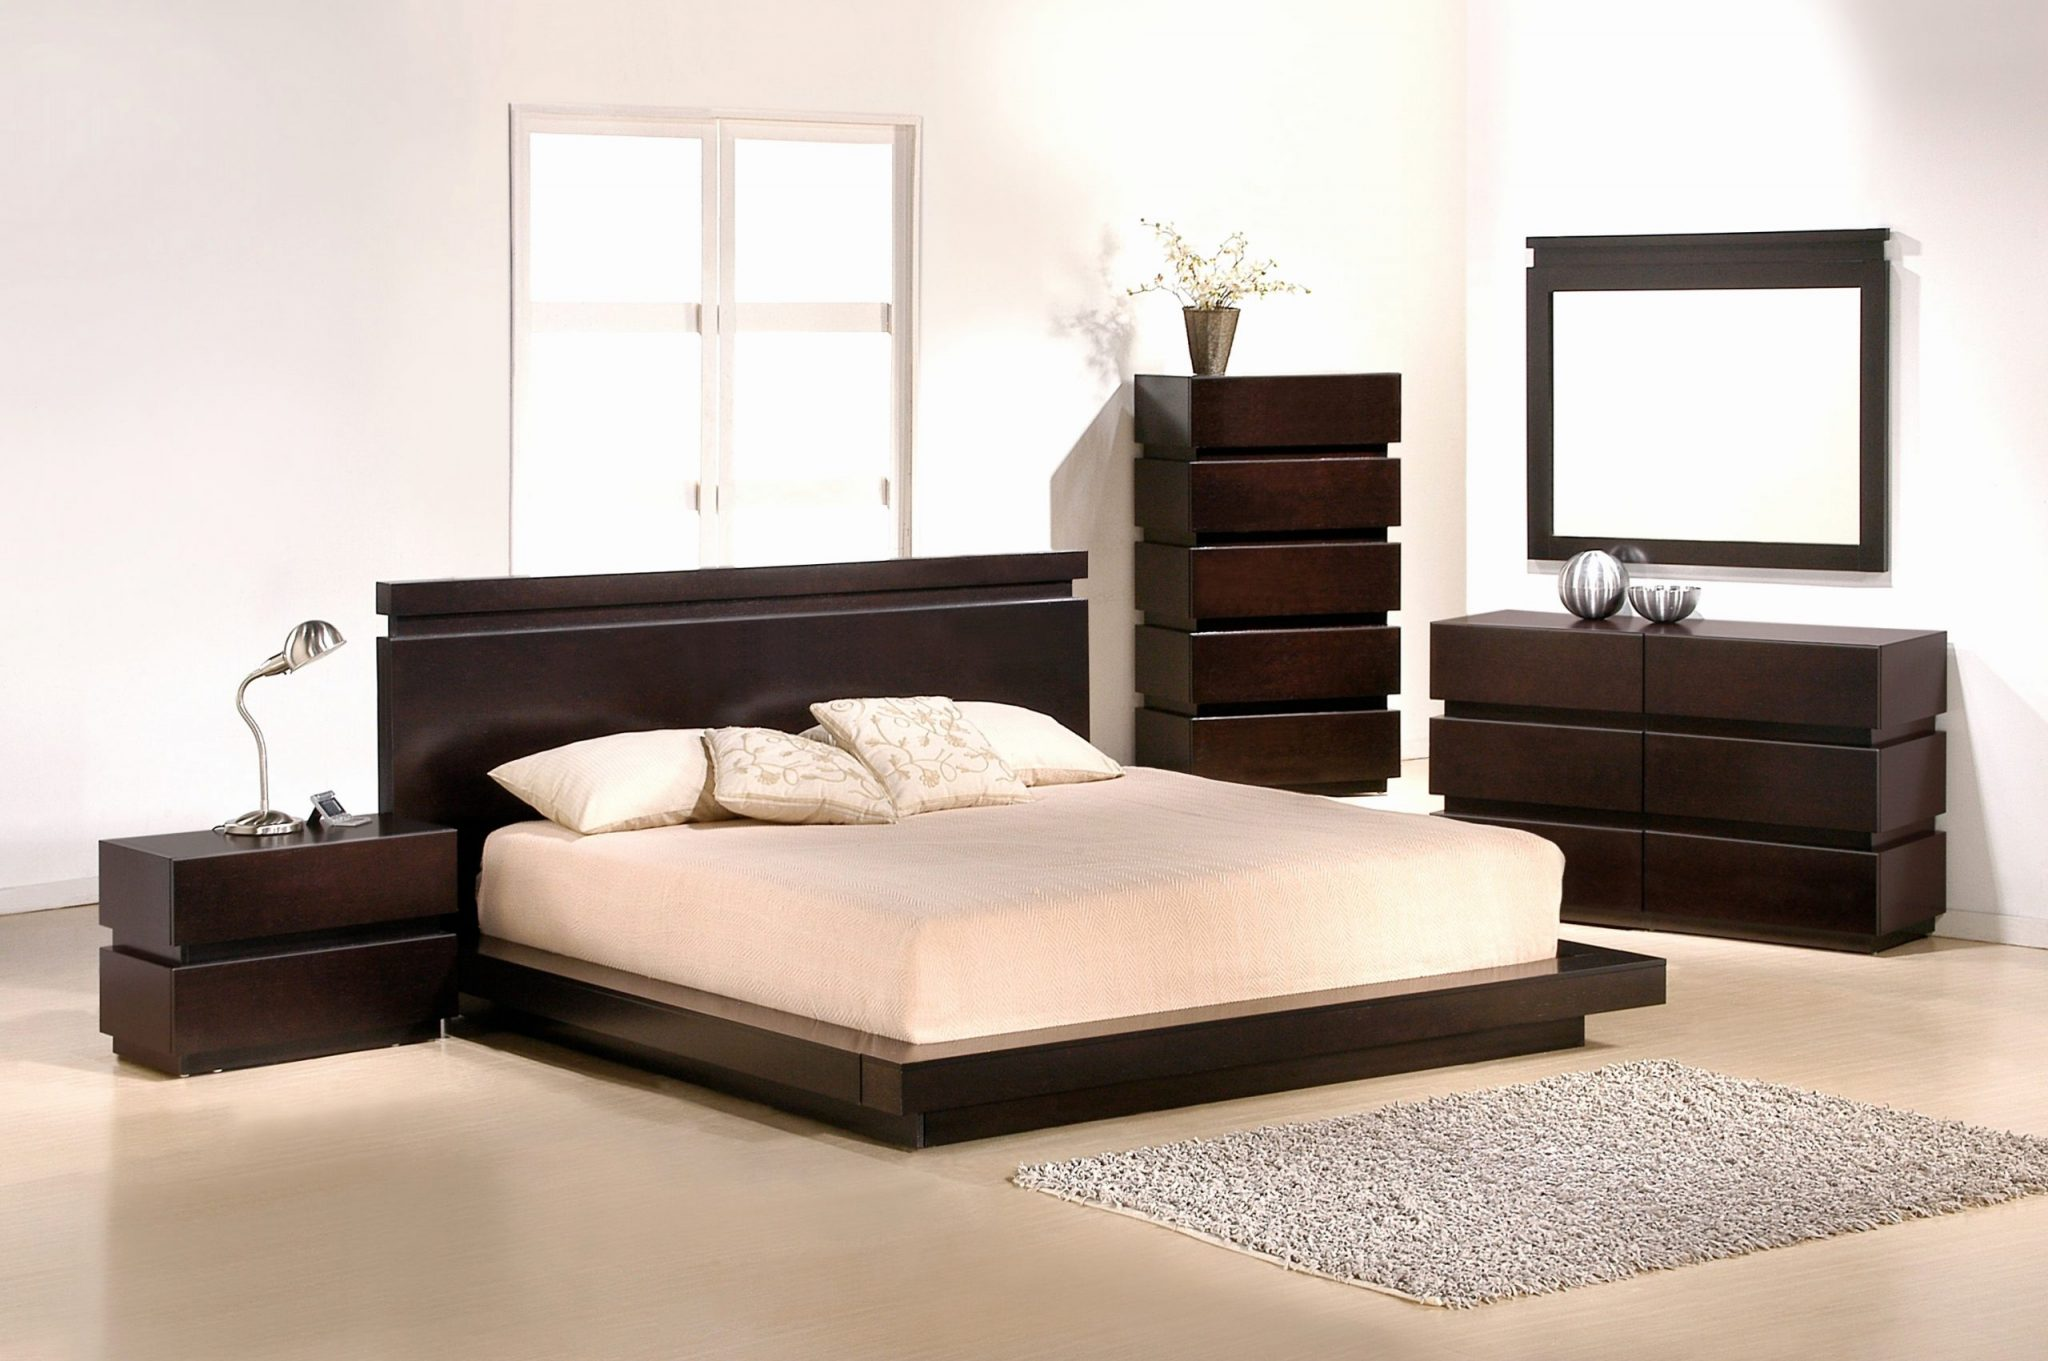 Bed Designs in Pakistan - Latest Beds Variety 2020